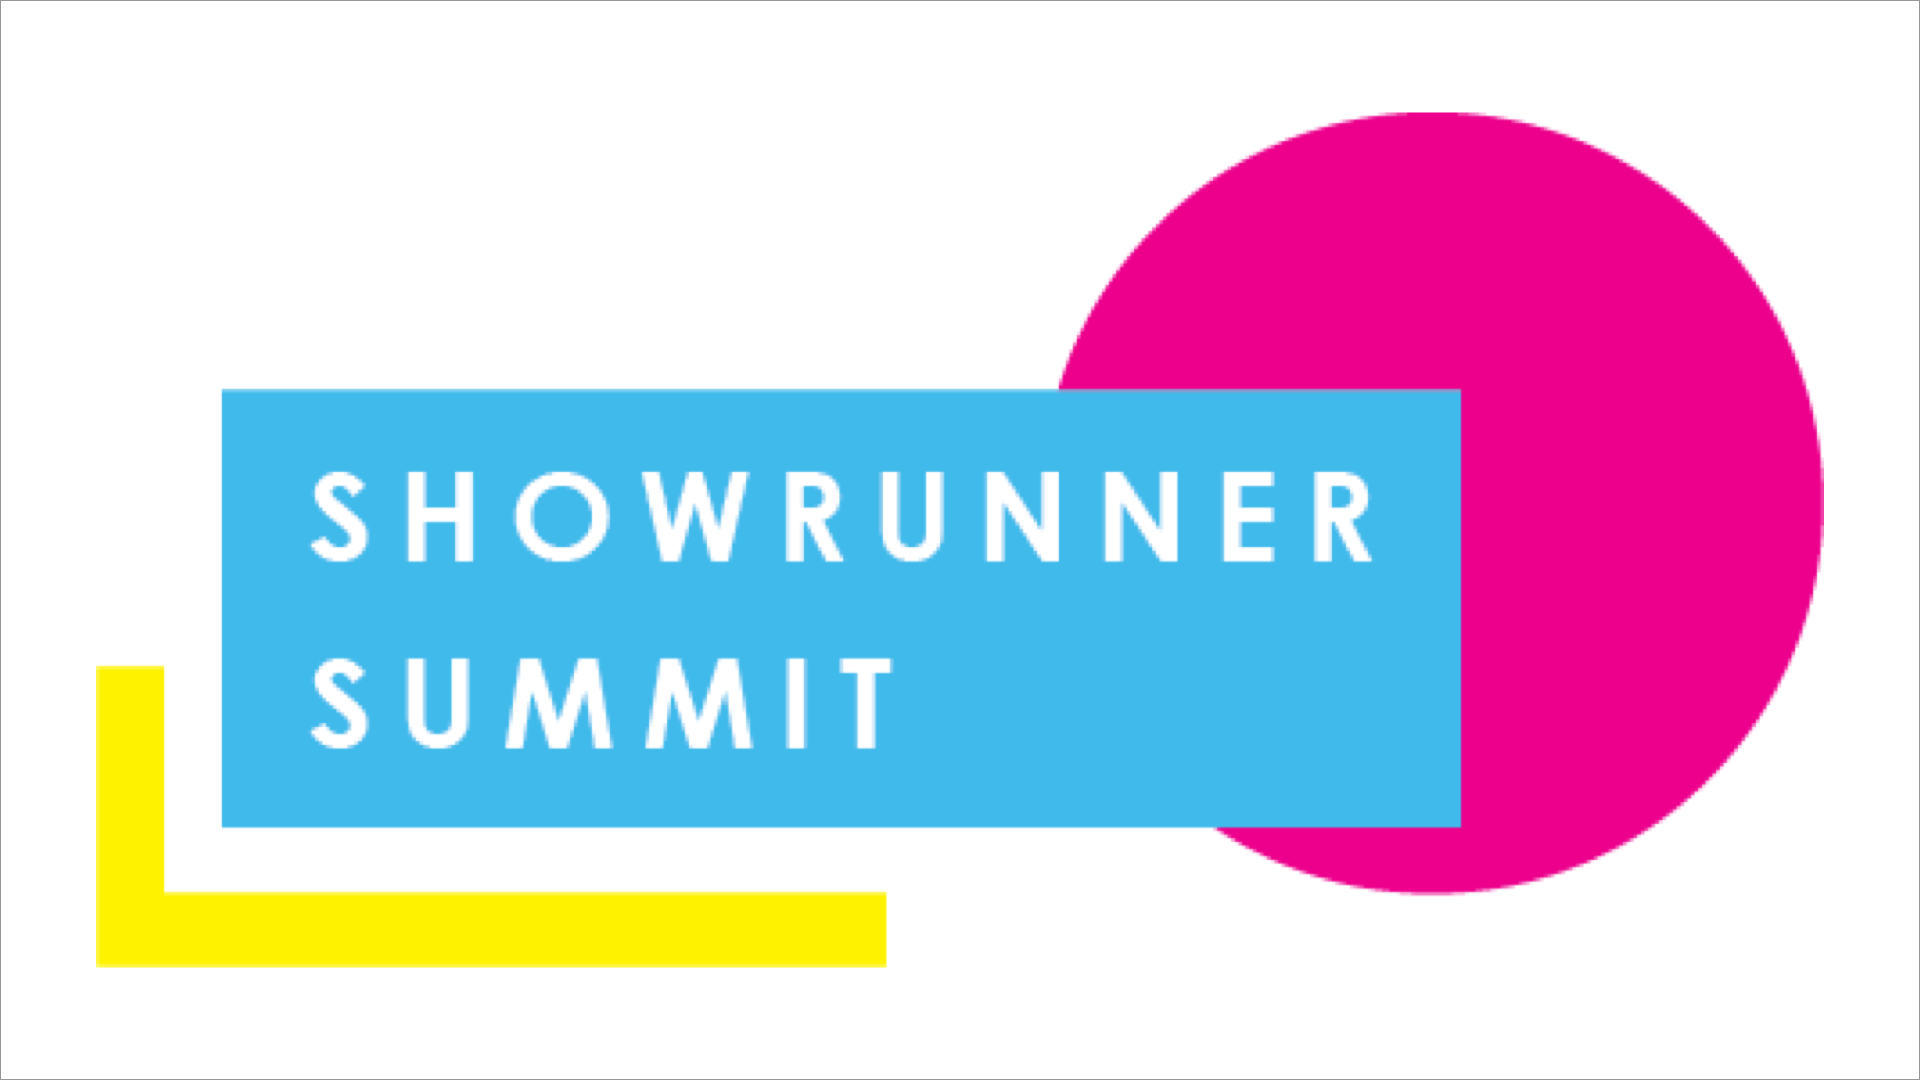 Showrunner Summit_1920x1080.png